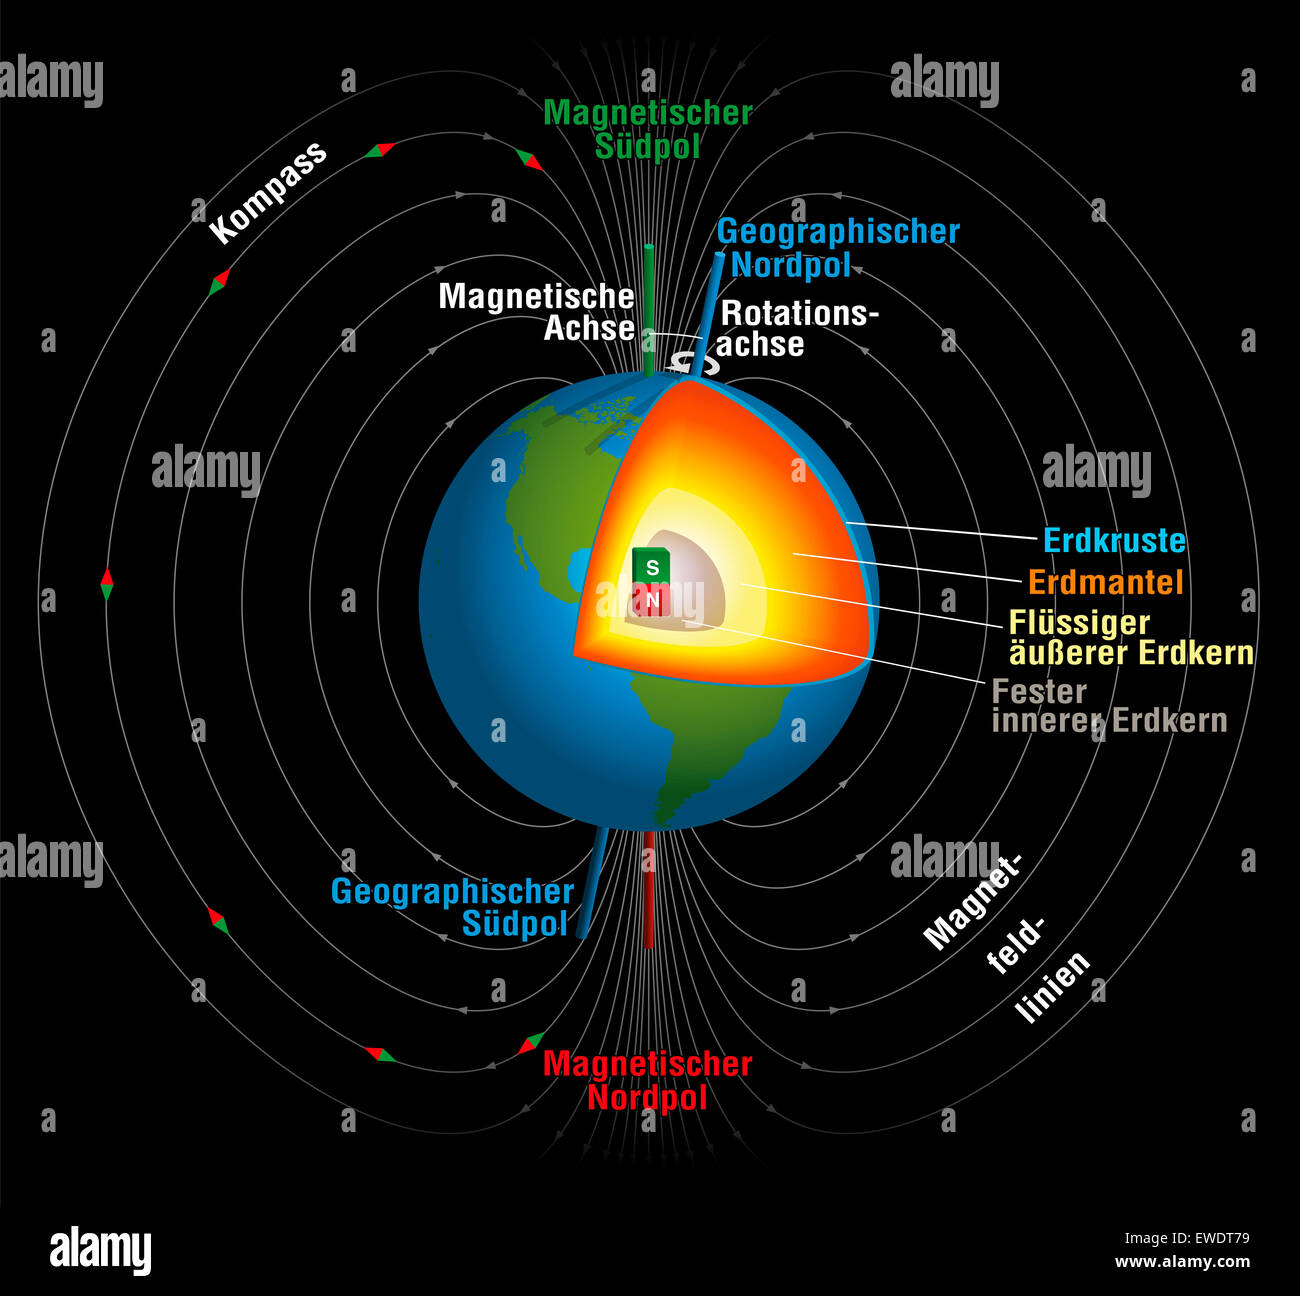 Earths magnetic field german labeling stock photo 84512269 alamy earths magnetic field german labeling ccuart Image collections